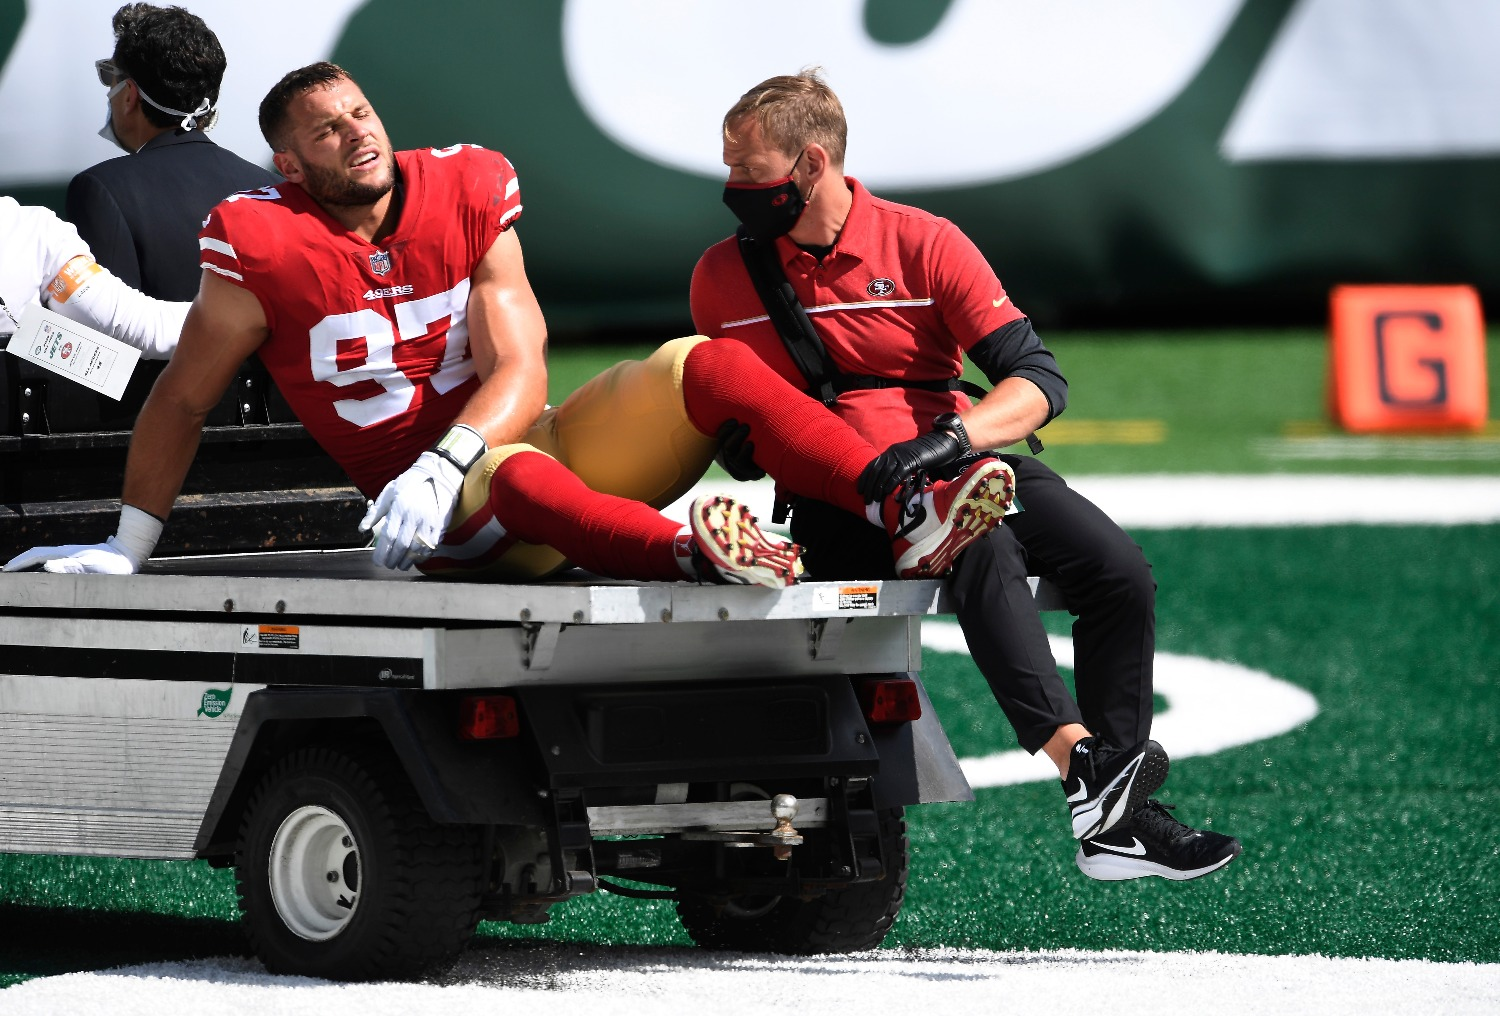 The 49ers suffered a devastating blow to their Super Bowl chances with Nick Bosa sustaining a torn ACL that ends his season.